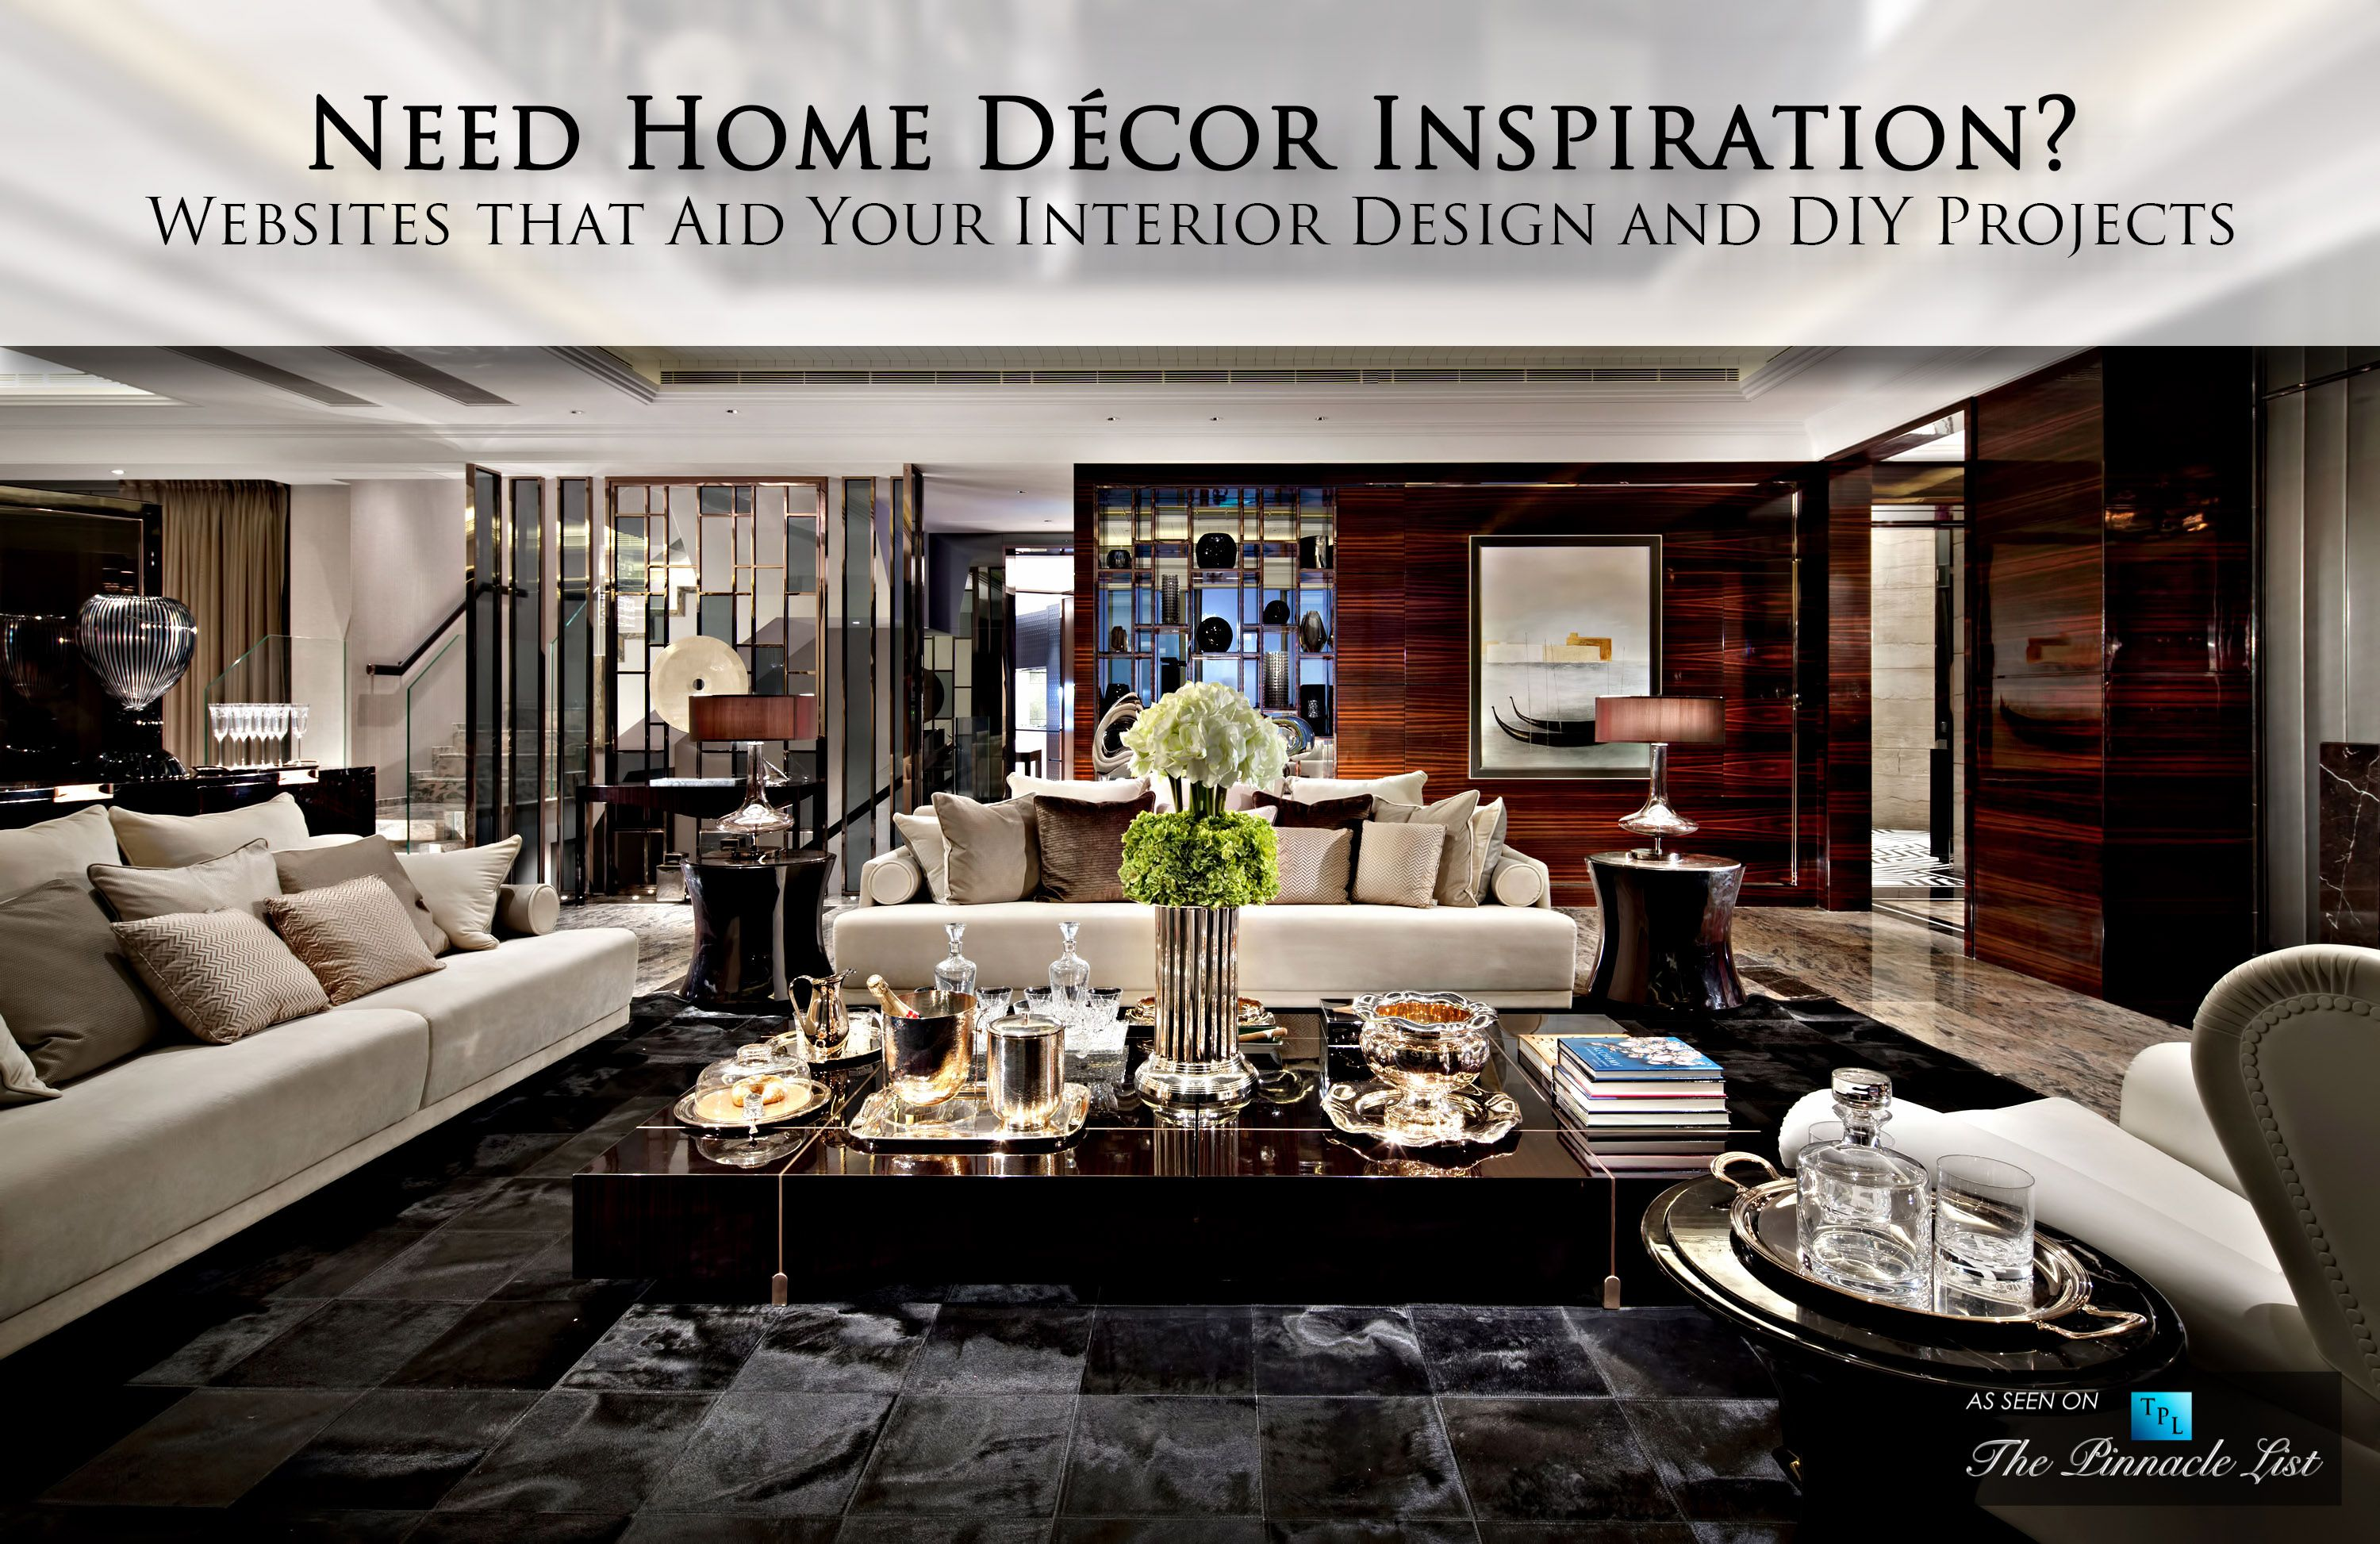 Bedroom Design Websites Need Home Décor Inspiration  Websites That Aid Your Interior